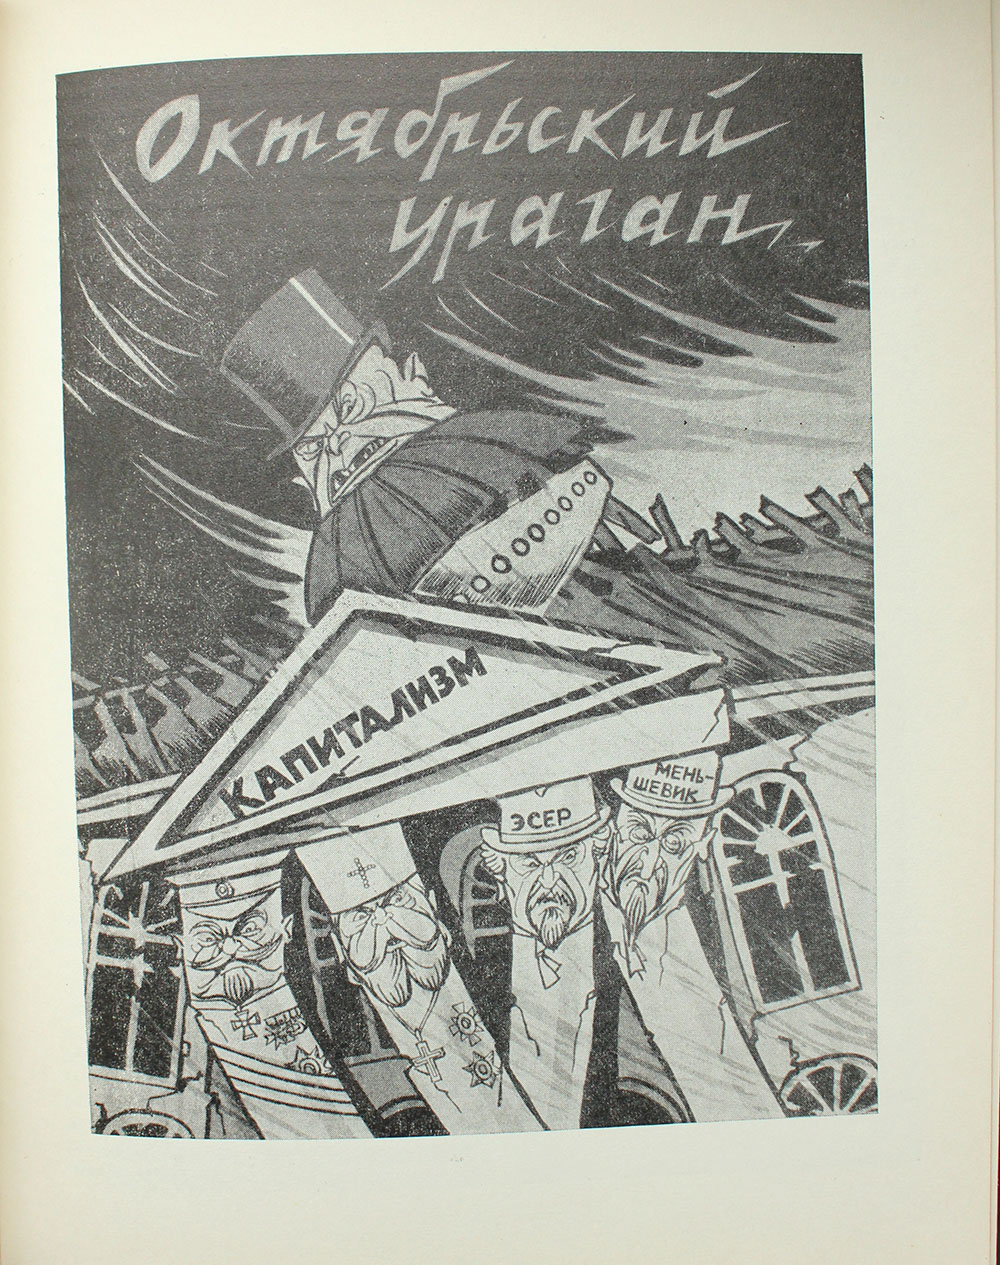 soviet satire artists desyat ocherkov o khudozhnikakh satirikakh soviet satire artists desyat ocherkov o khudozhnikakh satirikakh i e ten essays on satirical artists